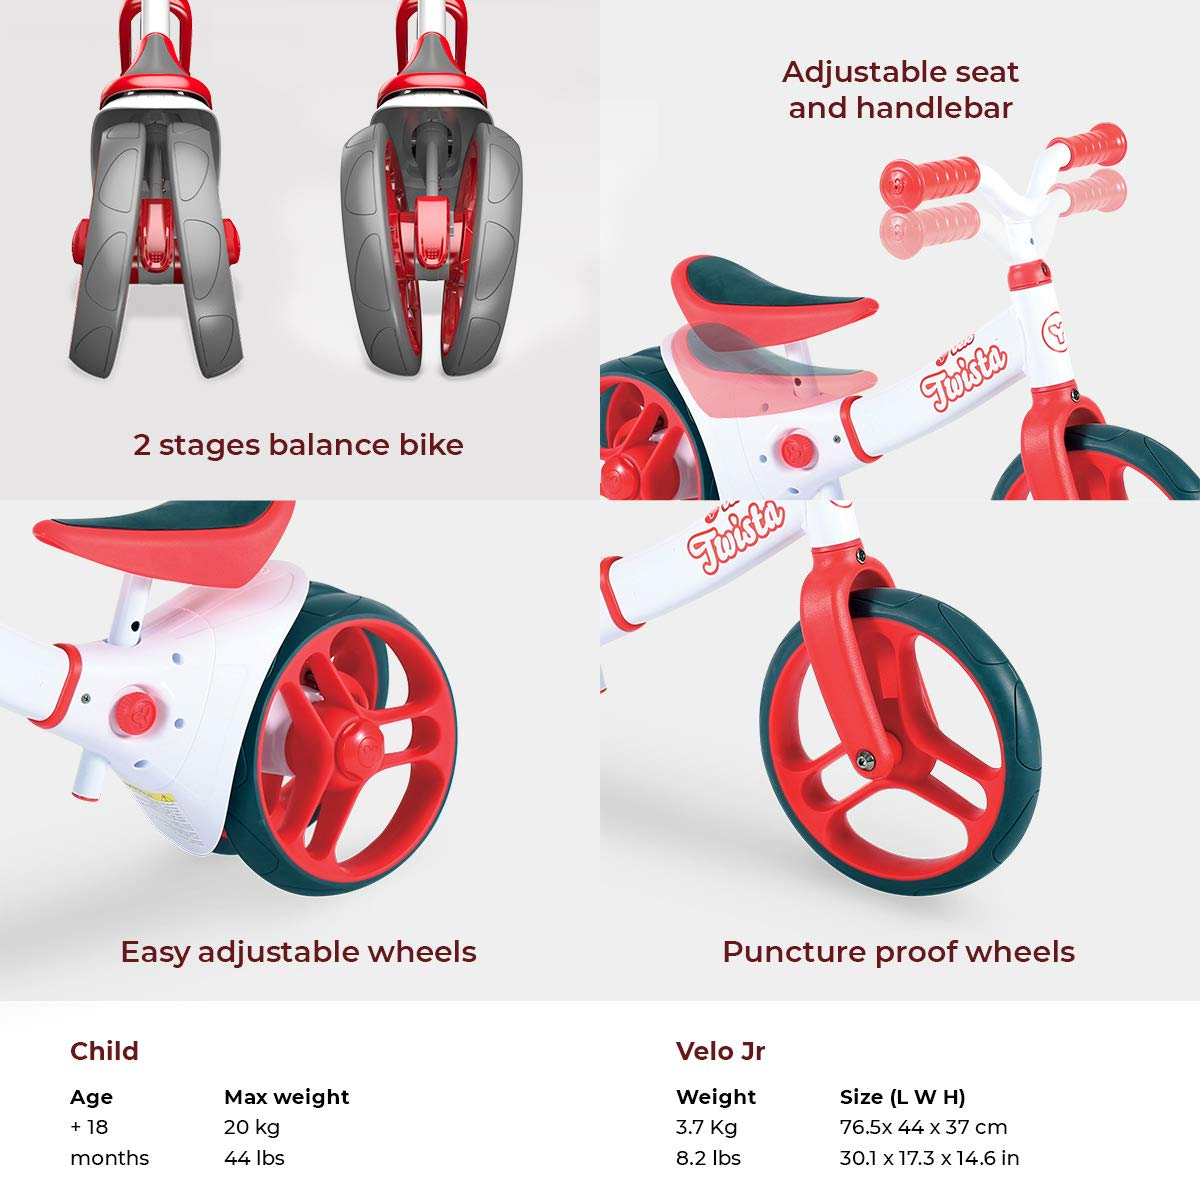 Pleasing Yvolution Y Velo Twista Baby Balance Bike Walking Bicycle With Adjustable Wheels And Seat 18 Months Pdpeps Interior Chair Design Pdpepsorg